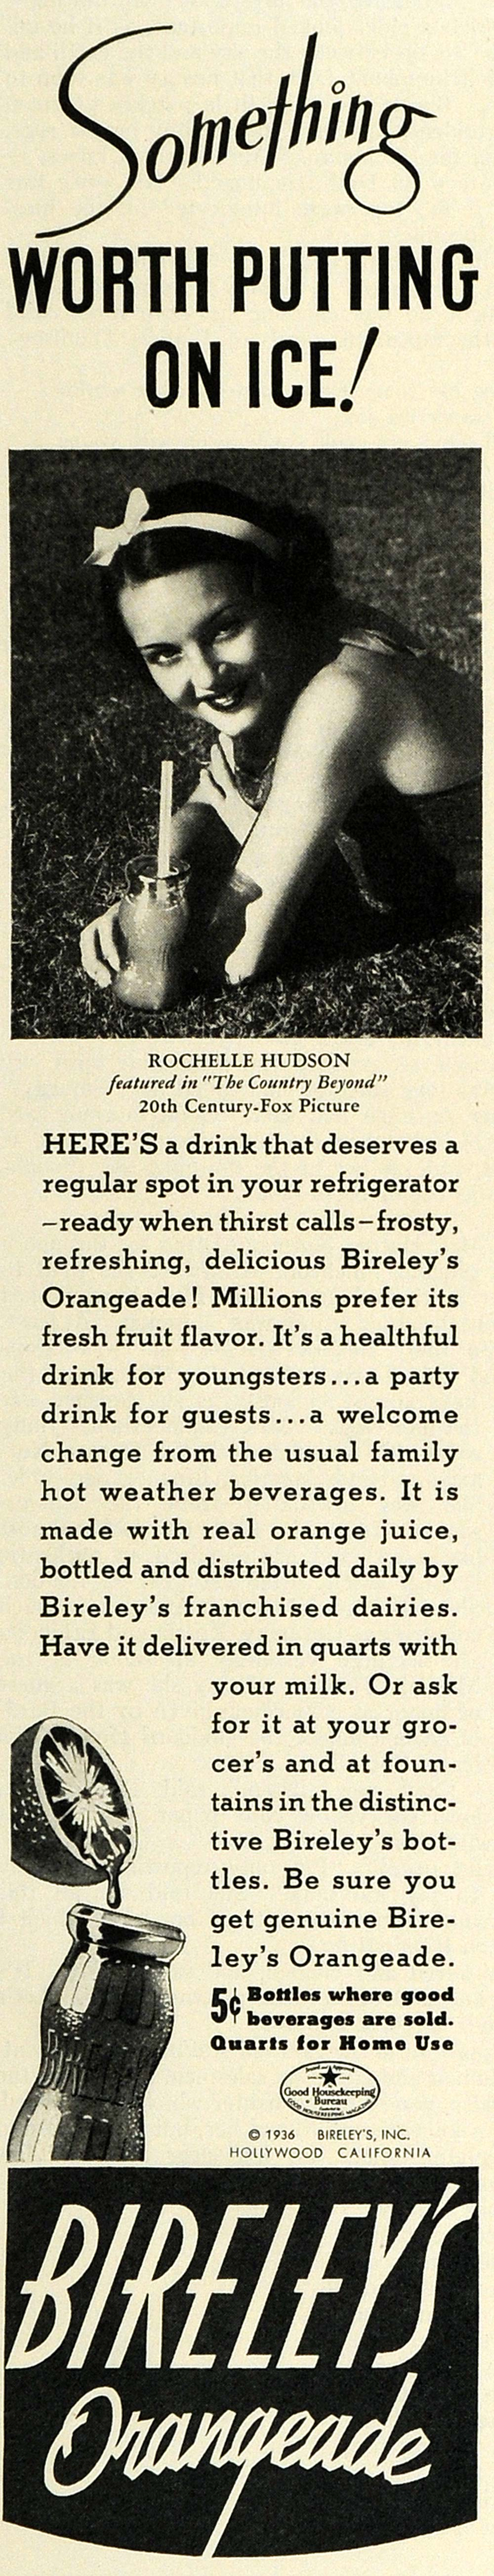 1936 Ad Rochelle Hudson Fox Actress Bireleys Orangeade - ORIGINAL MCC4